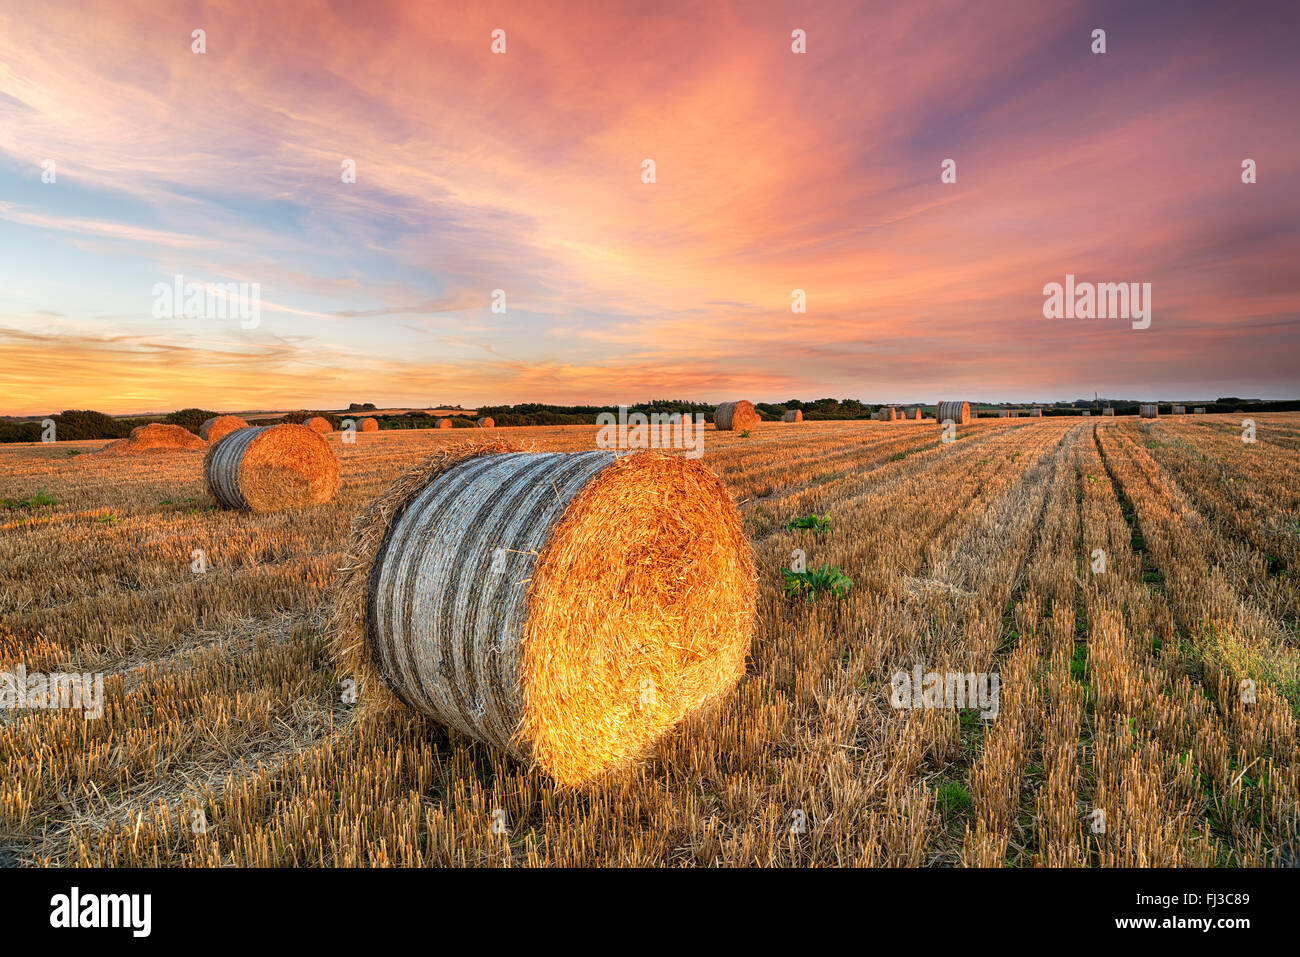 Beautiful sunset over a field of hay bales near Newquay in Cornwall - Stock Image